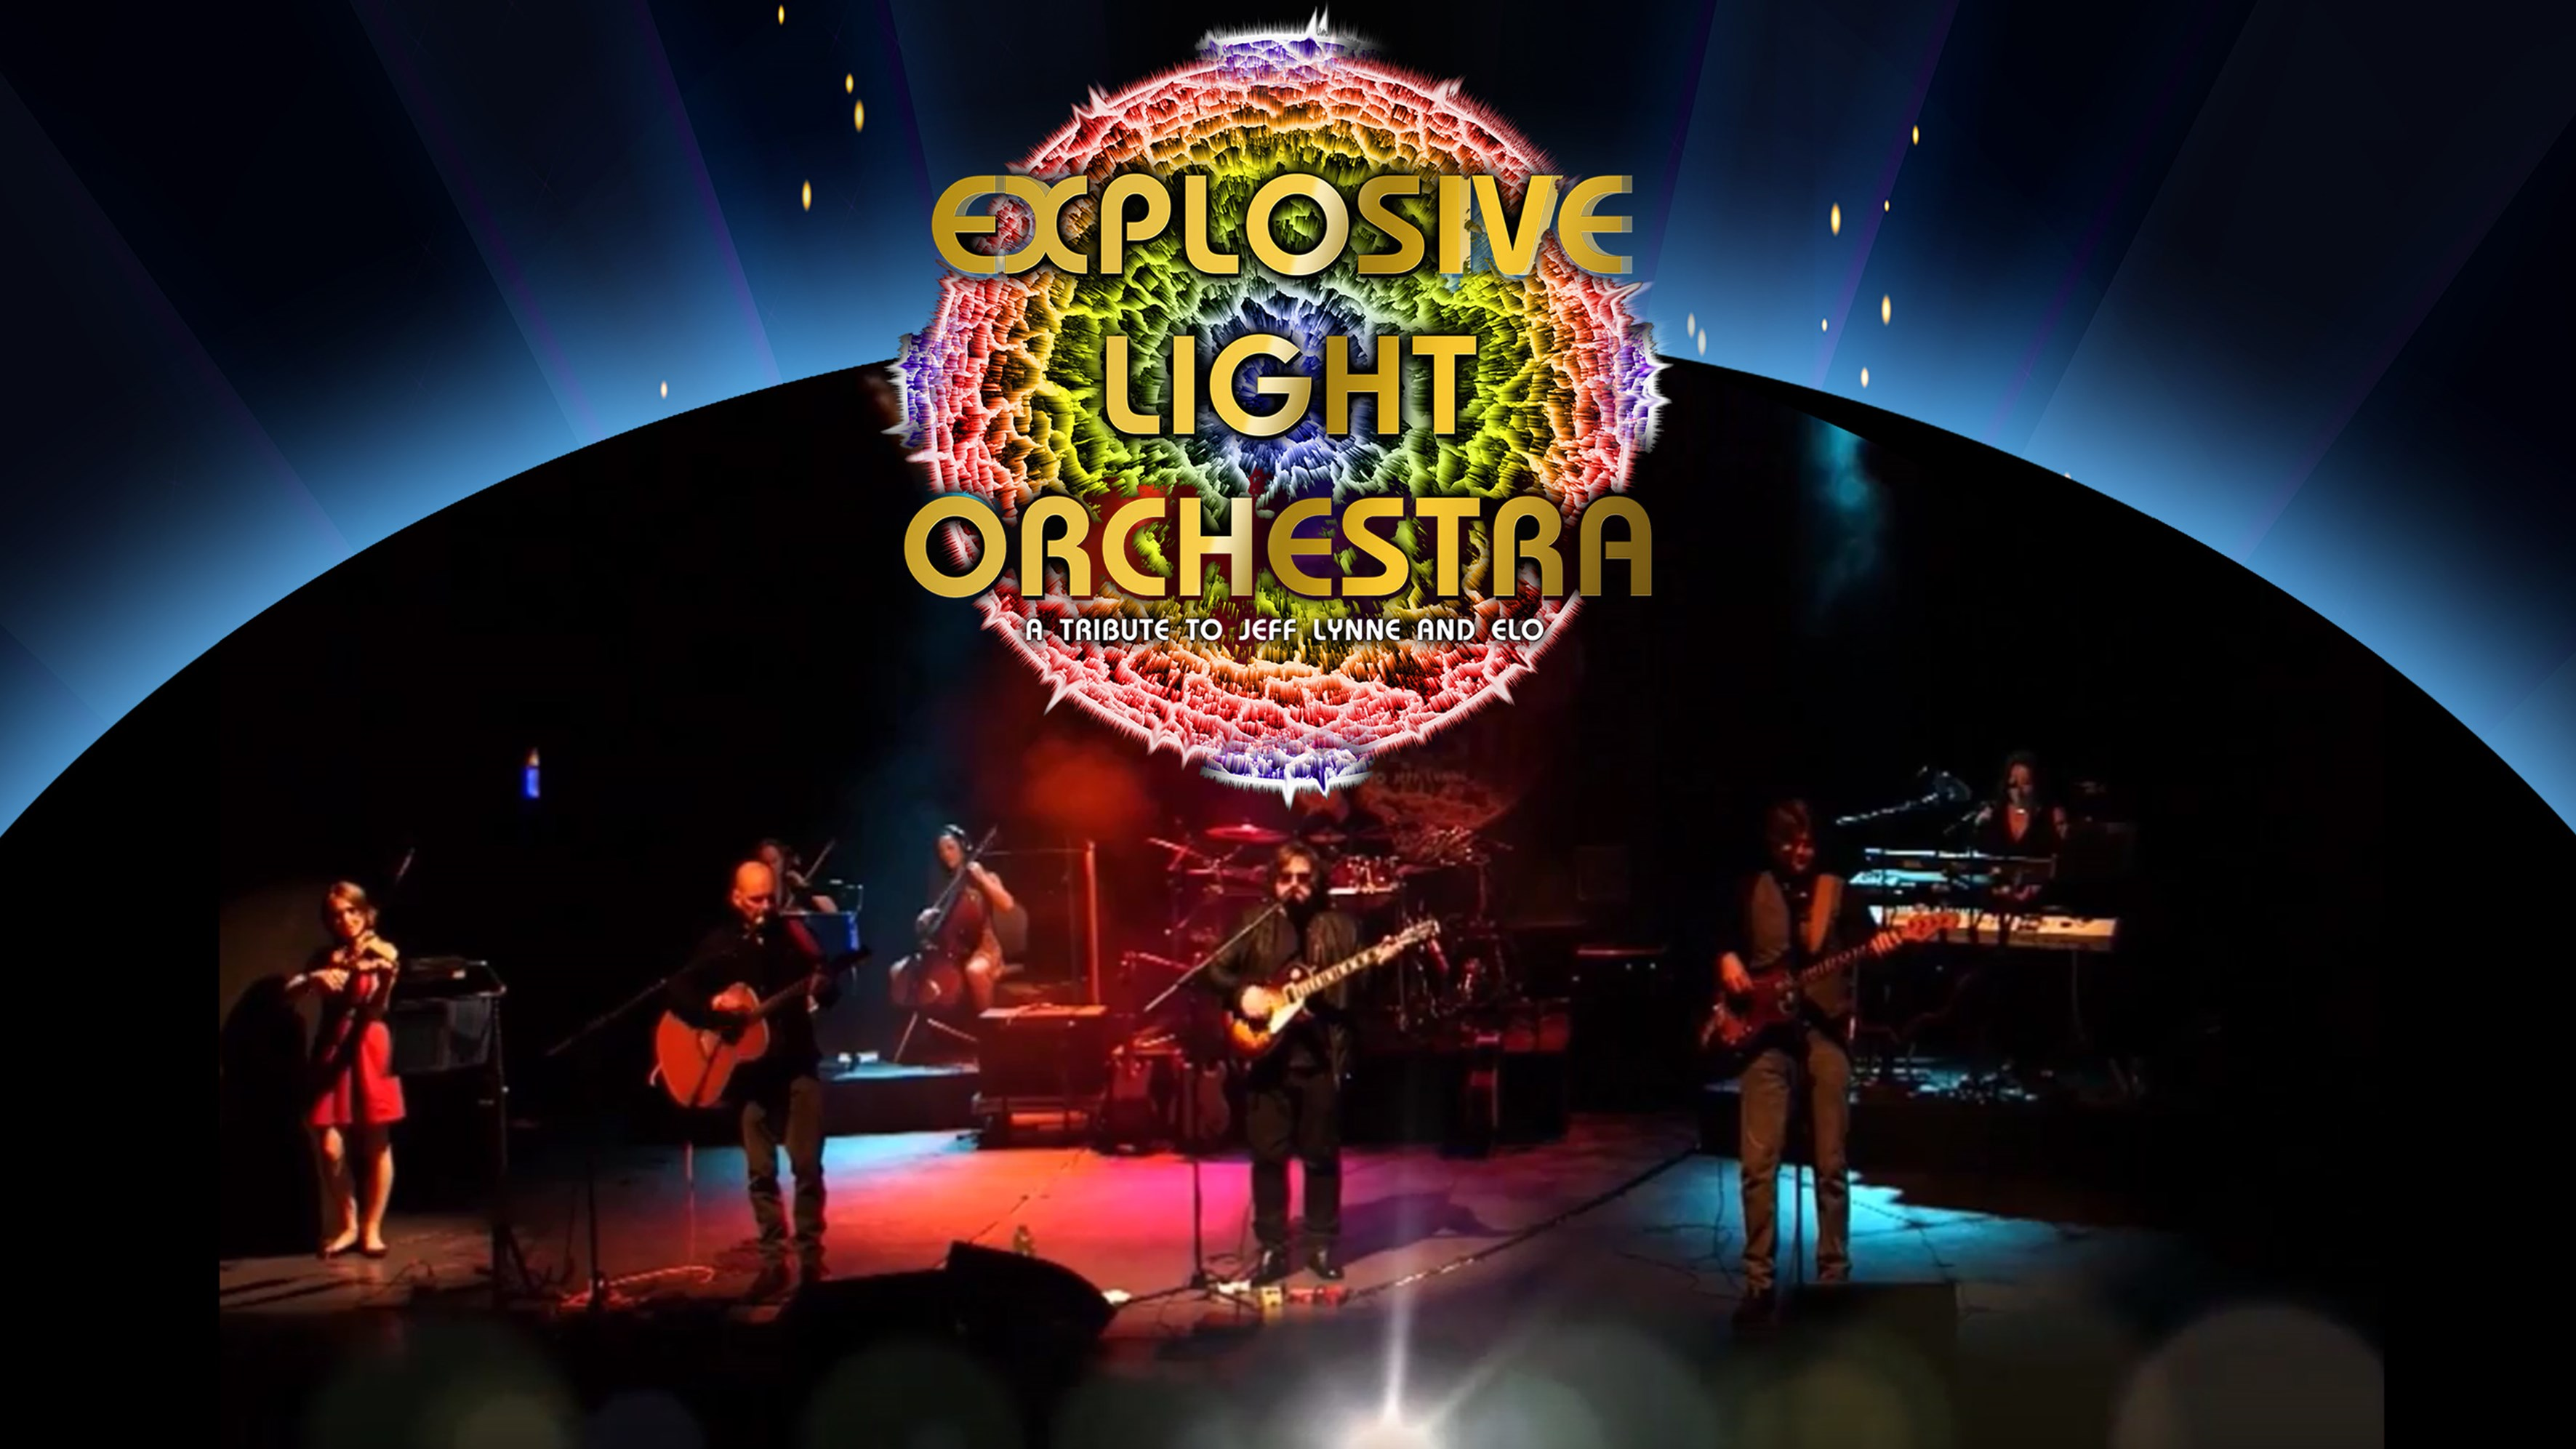 Explosive Light Orchestra - A celebration of ELO & Jeff Lynne - (fotograaf onbekend) - webbanner.jpg